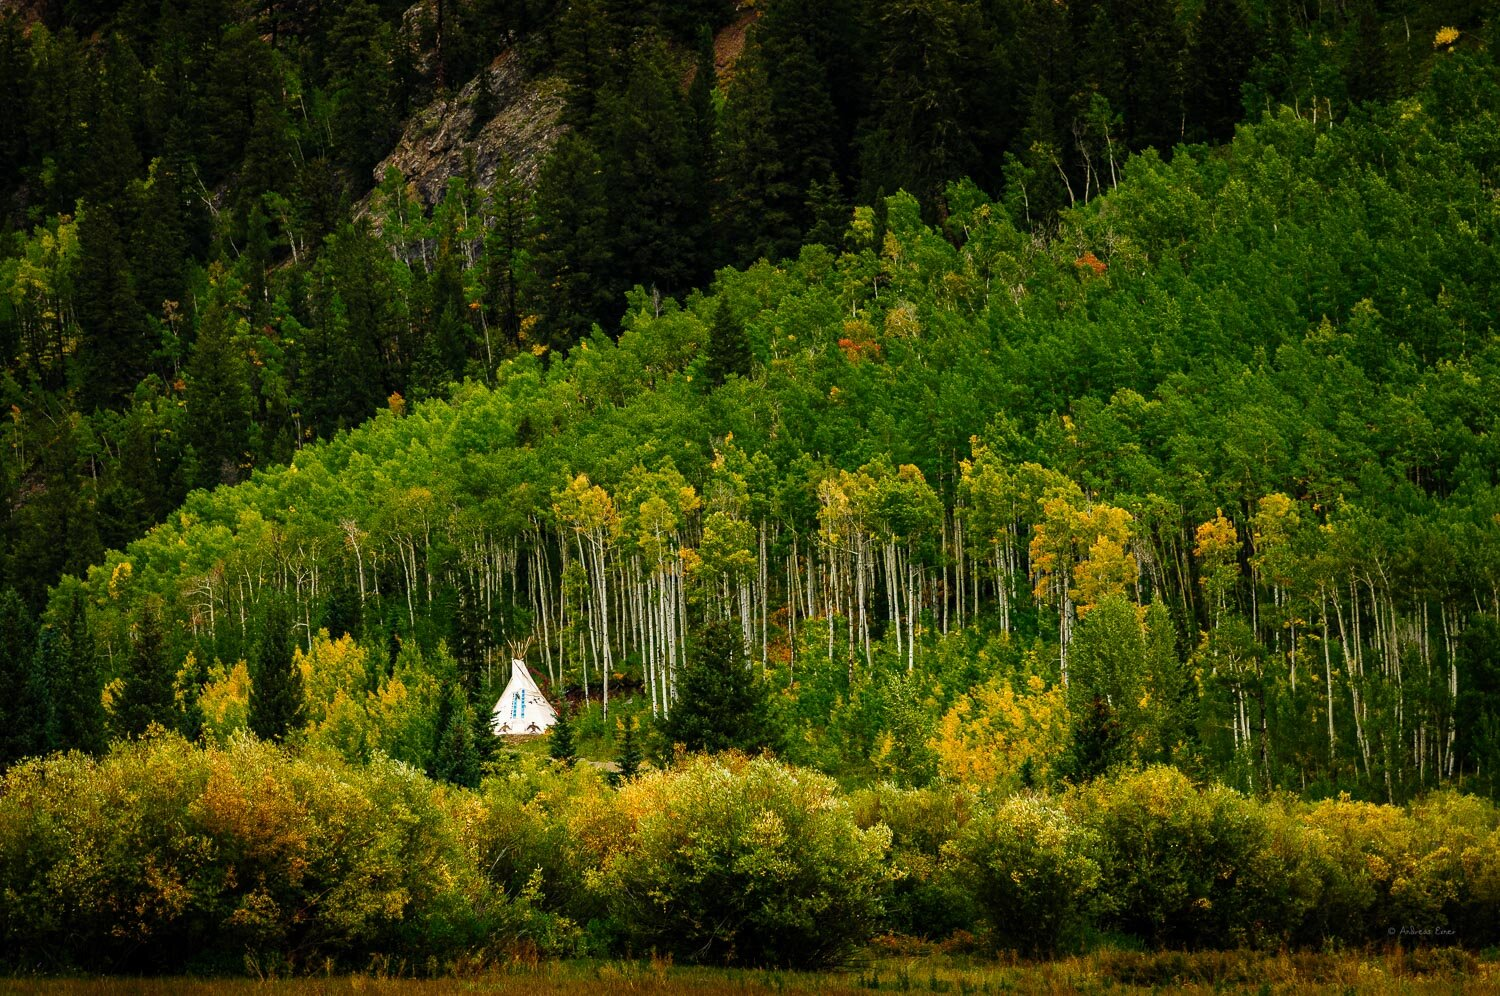 Tipi between aspens, Ashcroft, Colorado, 2014